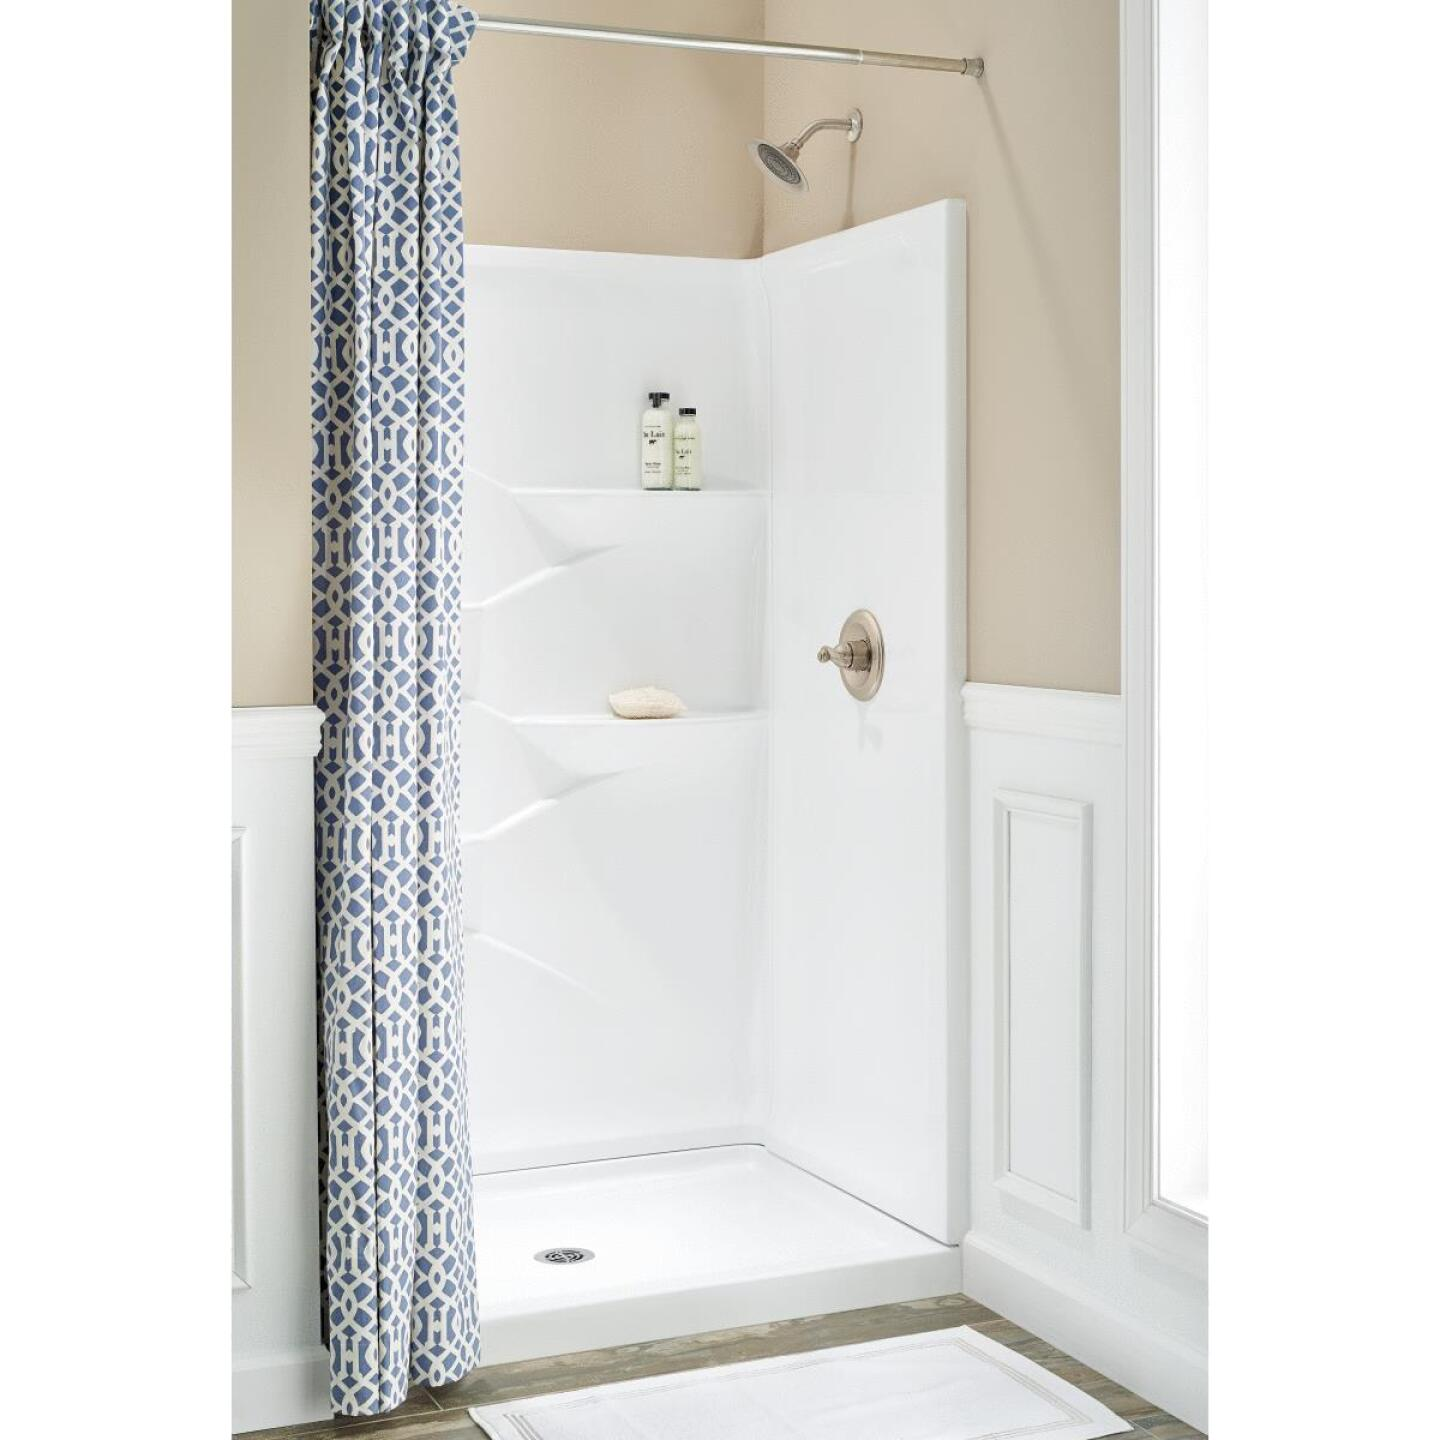 Delta Laurel 3-Piece 48 In. L x 34 In. D Shower Wall Set in White Image 1